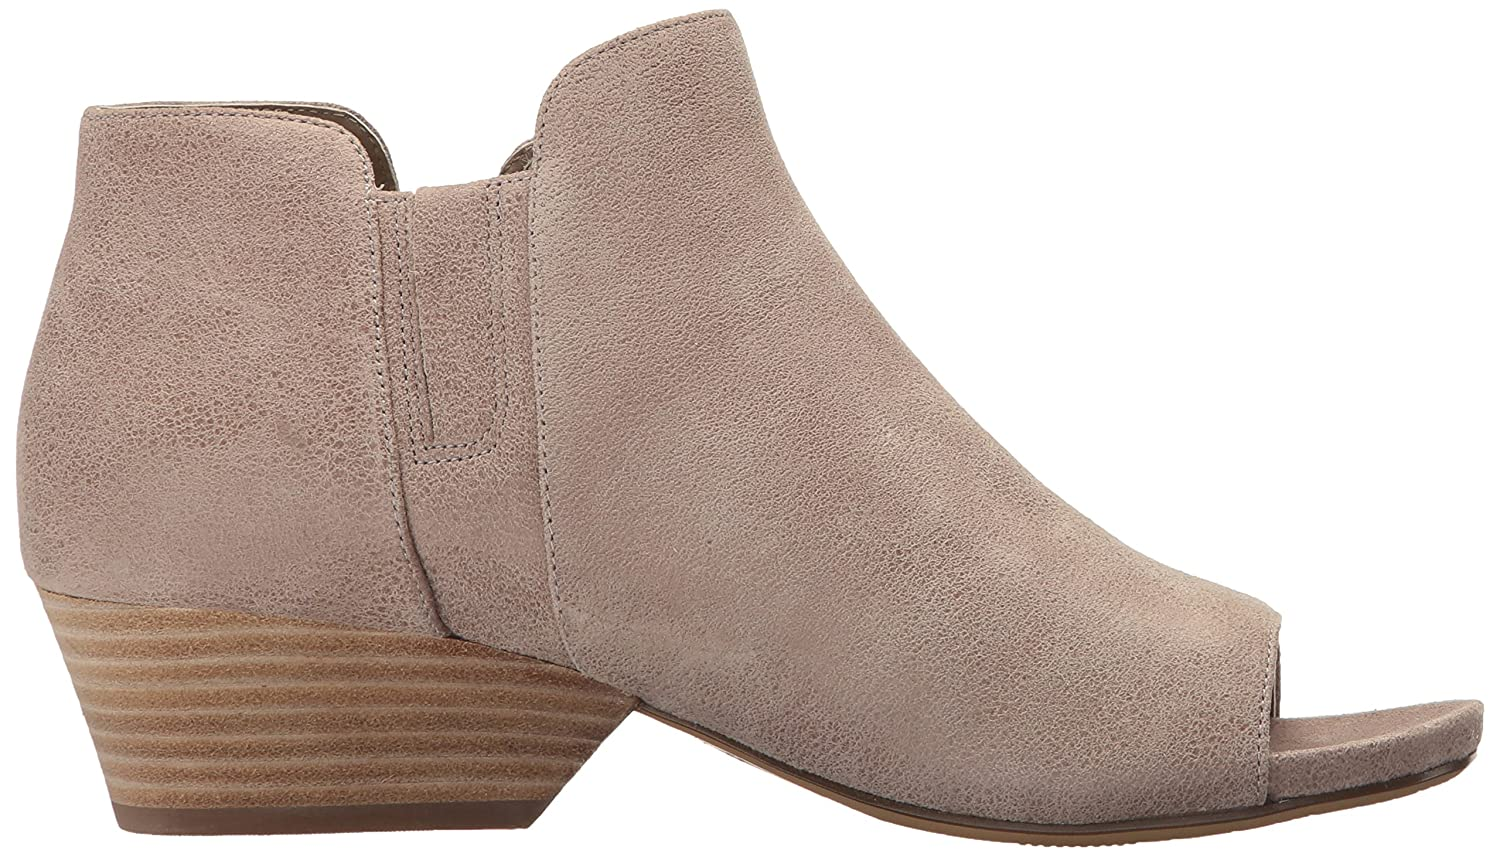 Naturalizer Women's Gemi Ankle Bootie B01I2MA3ZY 9.5 W US|Grey